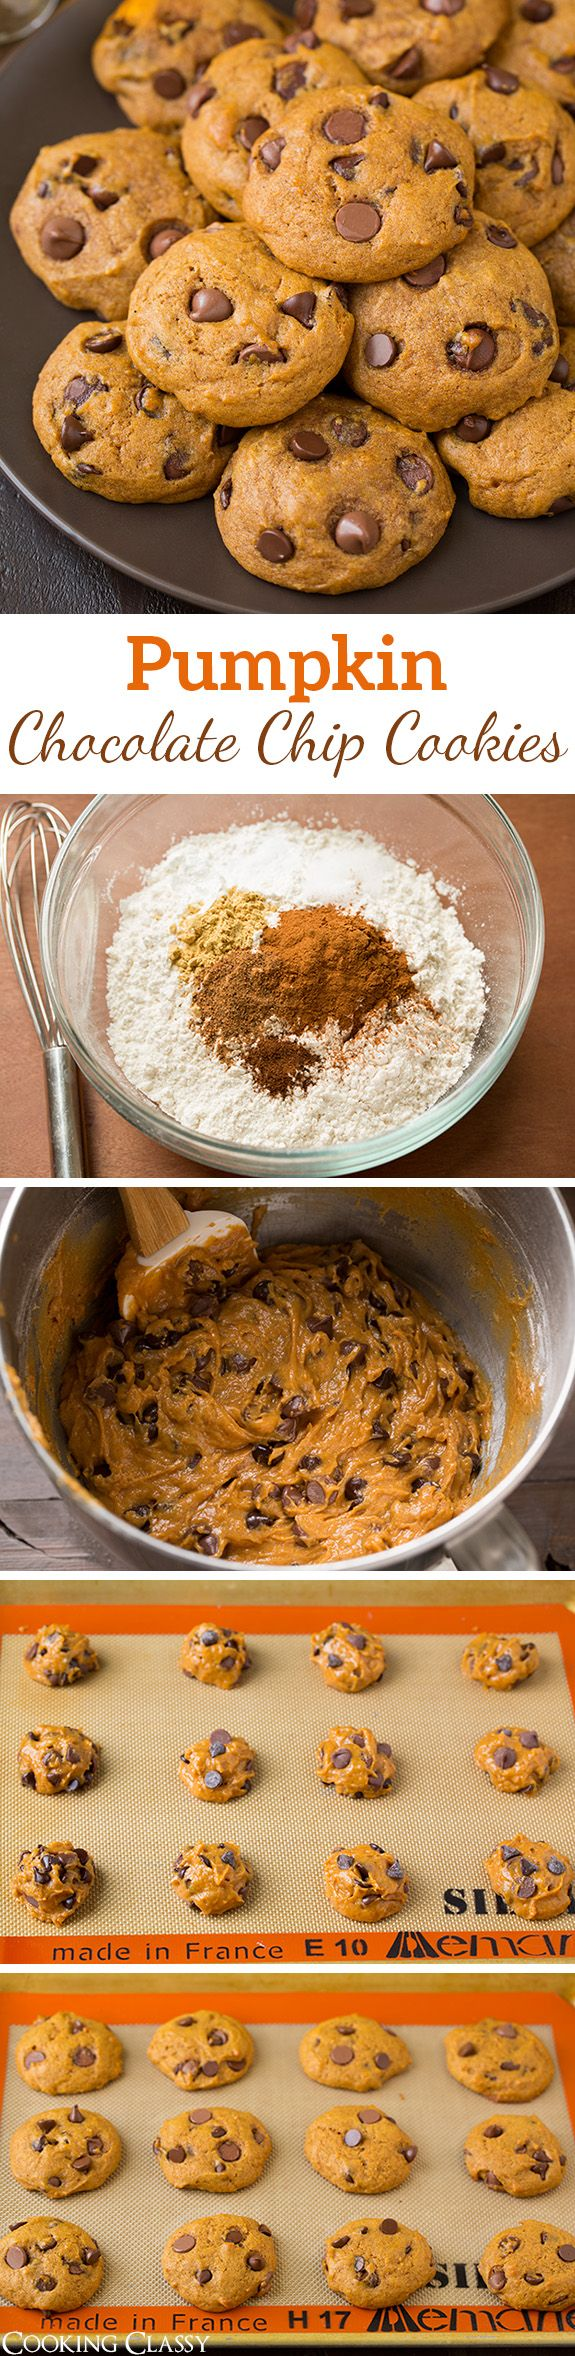 Pumpkin Chocolate Chip Cookies - just like the ones Grandma made! They are the…